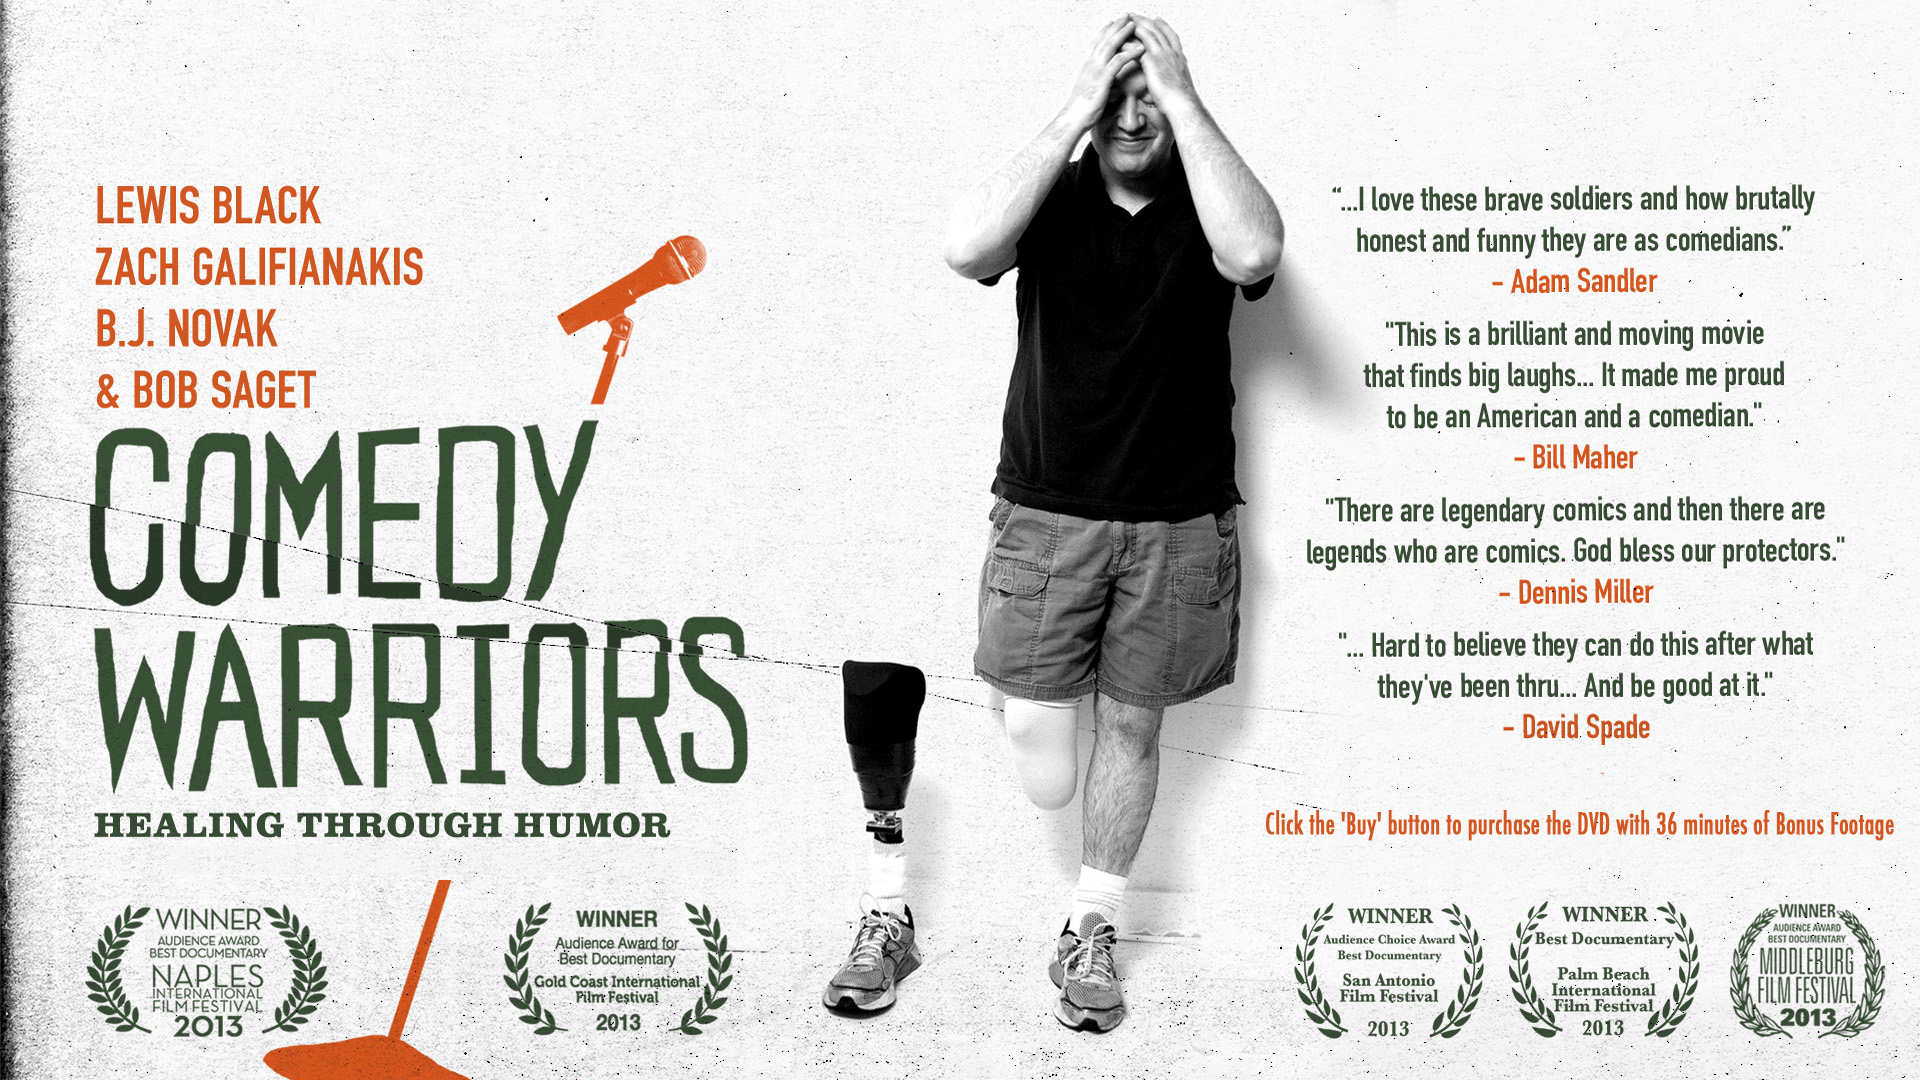 """Comedy Warriors"" is the story of five wounded servicemembers being mentored by comedy greats to perform stand up comedy.  Directed by John Wager.  For more information visit  www.comedywarriors.com ."